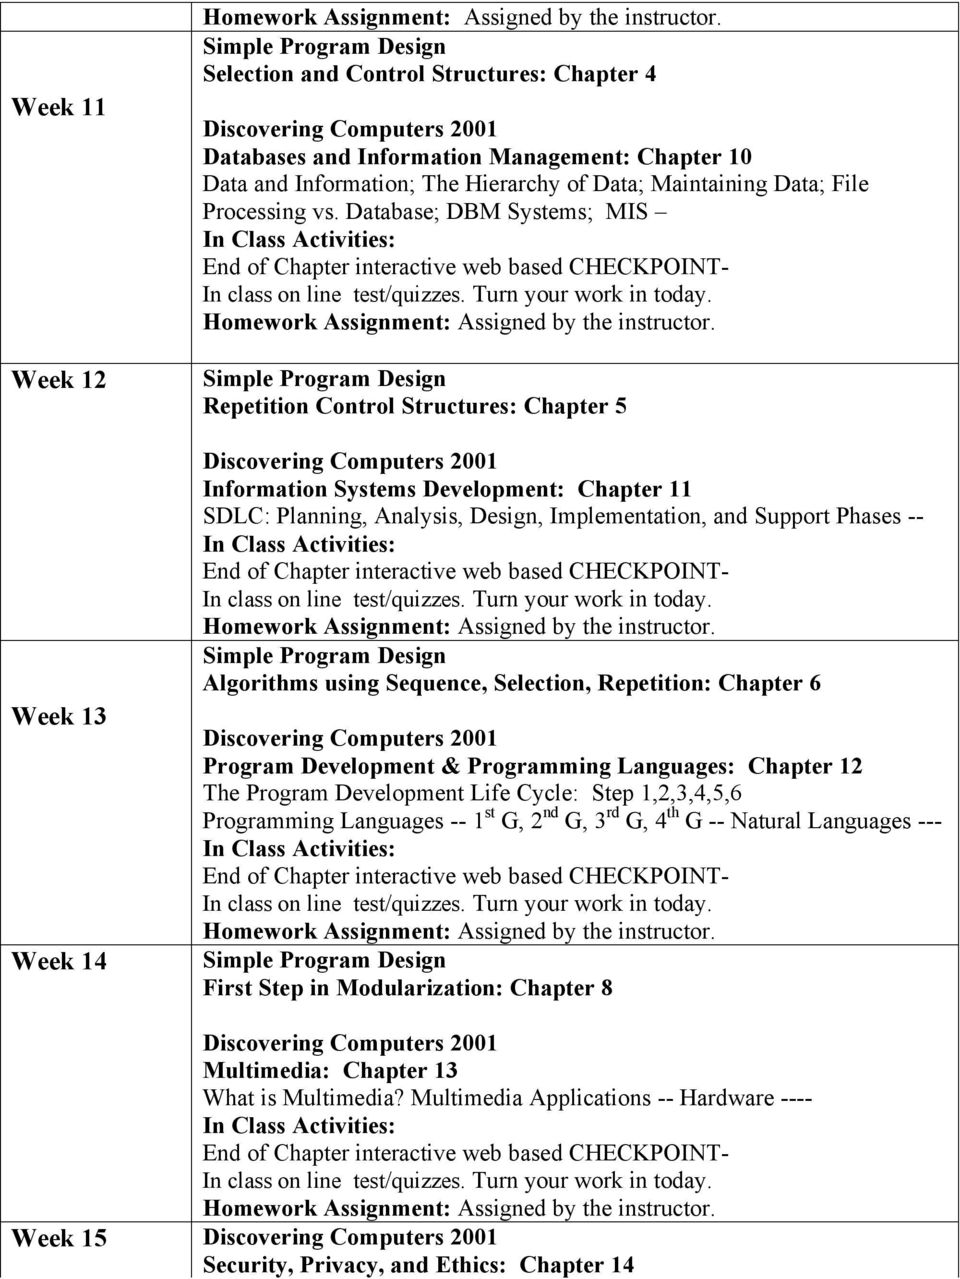 Computer Science Technology Itsc 1301 Introduction To Computers Website Course Syllabus Pdf Free Download